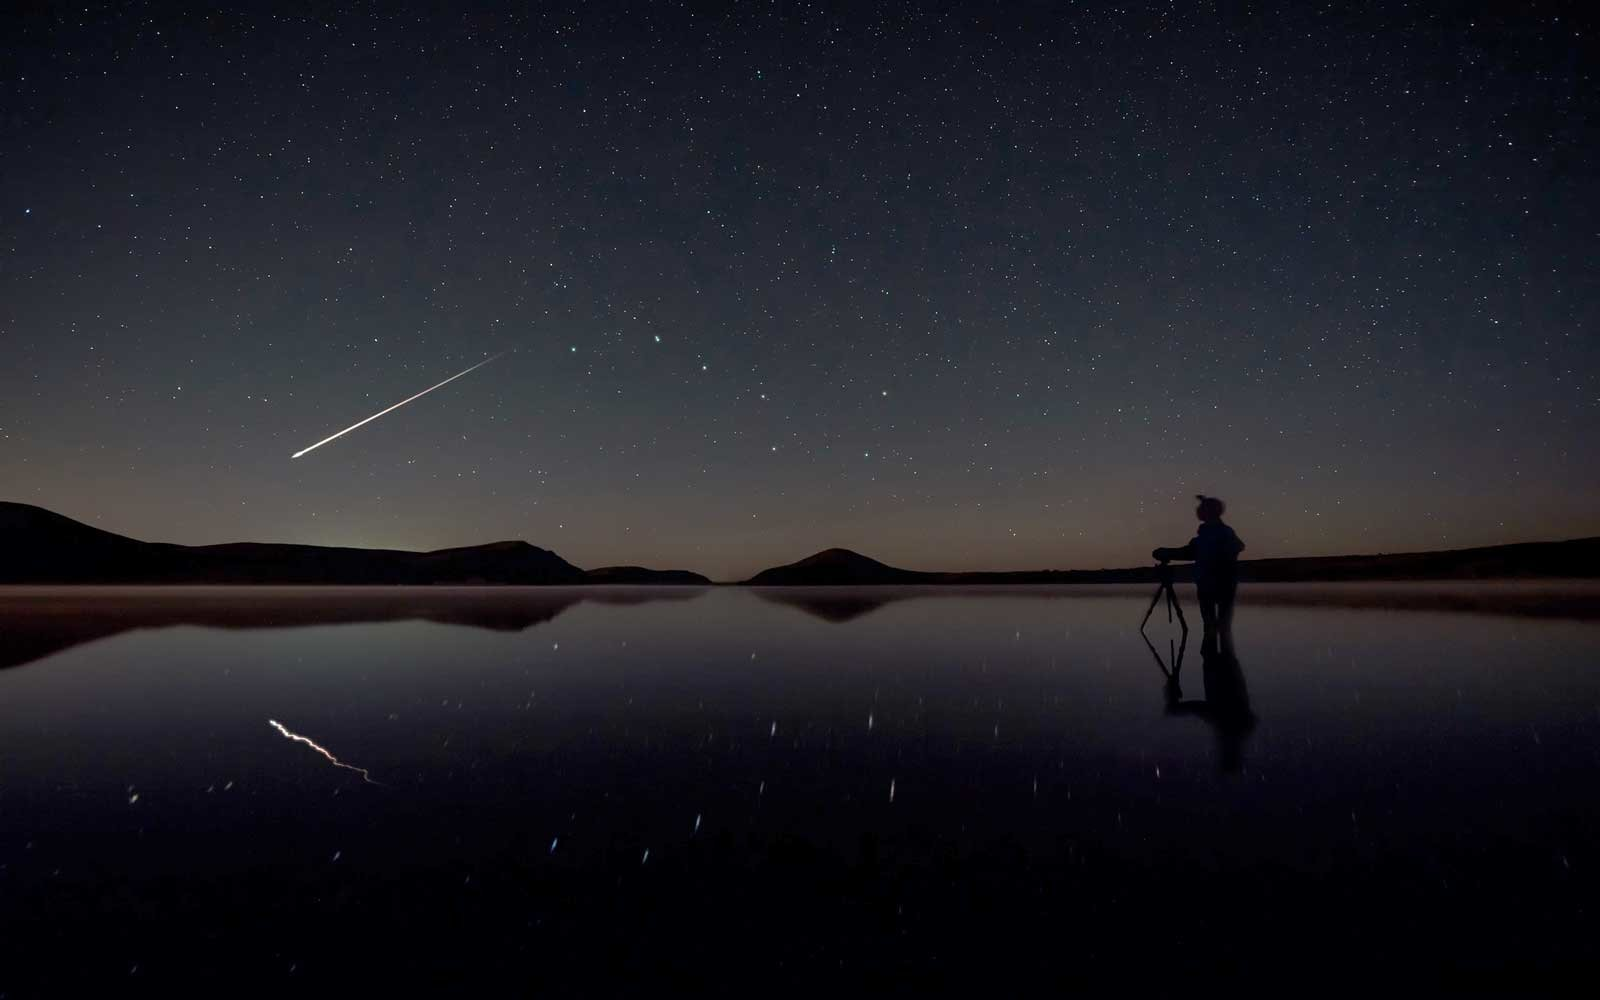 Starwatch: the annual display of the Quadrantid meteor shower